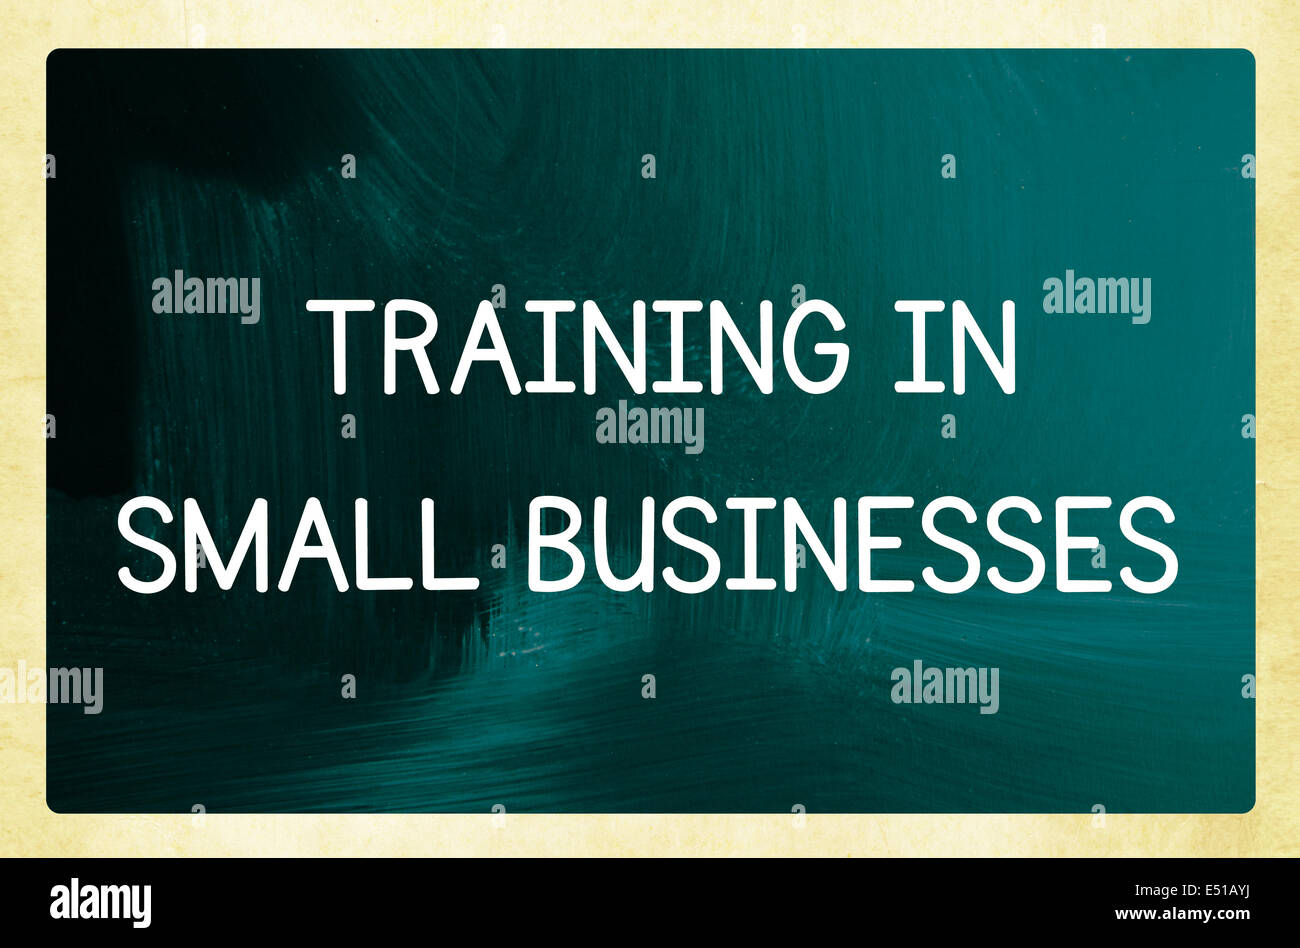 training in  small businesses - Stock Image